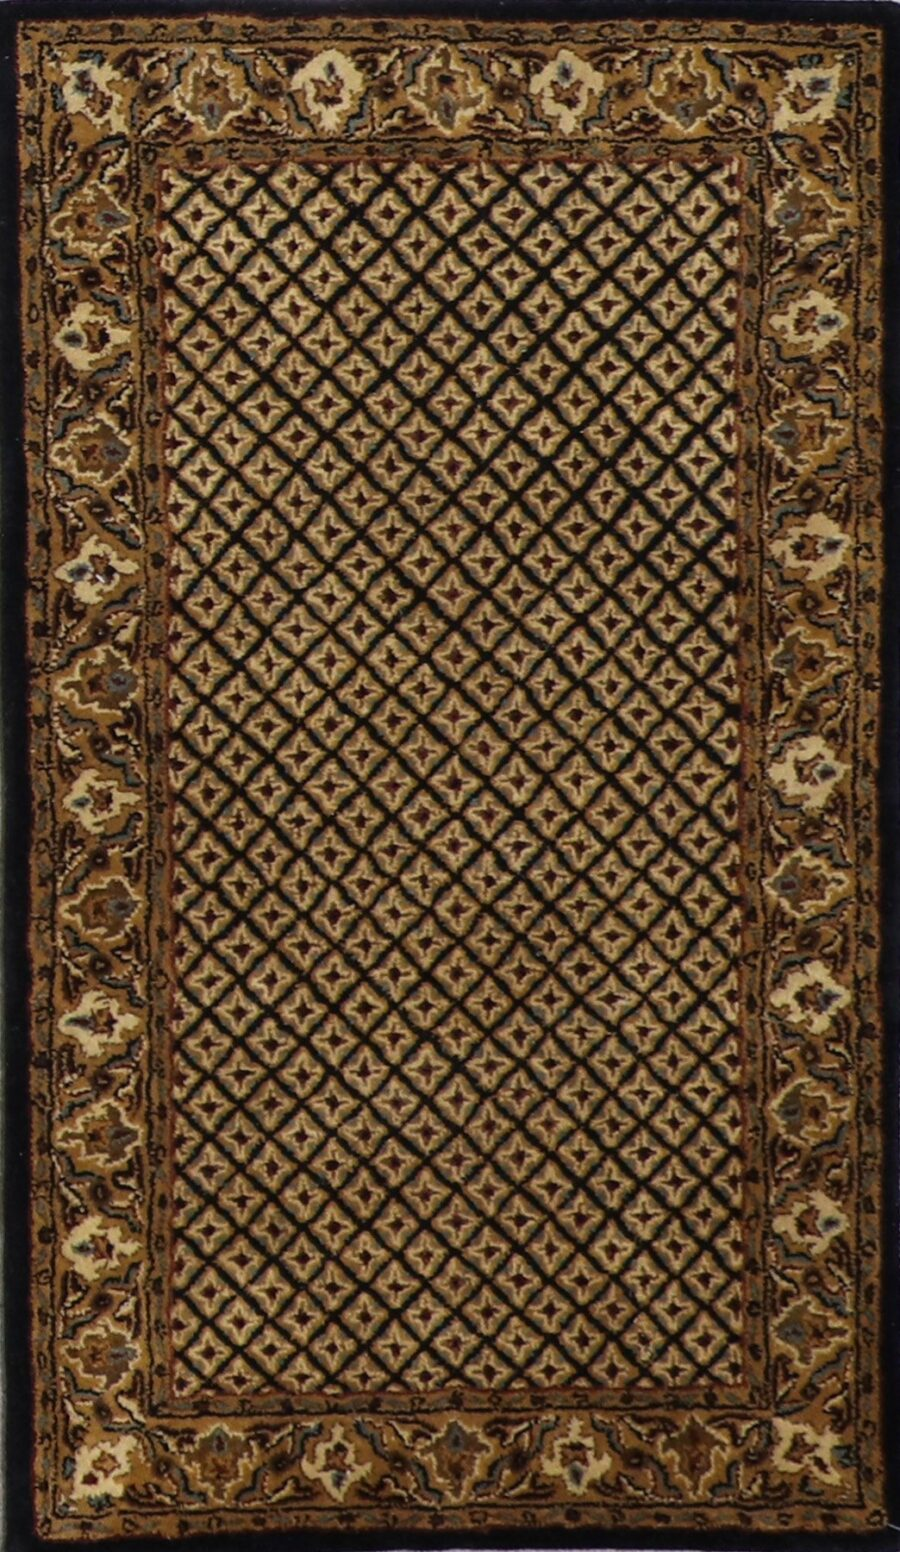 """3'x5'2"""" Decorative Black Wool Hand-Tufted Rug - Direct Rug Import   Rugs in Chicago, Indiana,South Bend,Granger"""